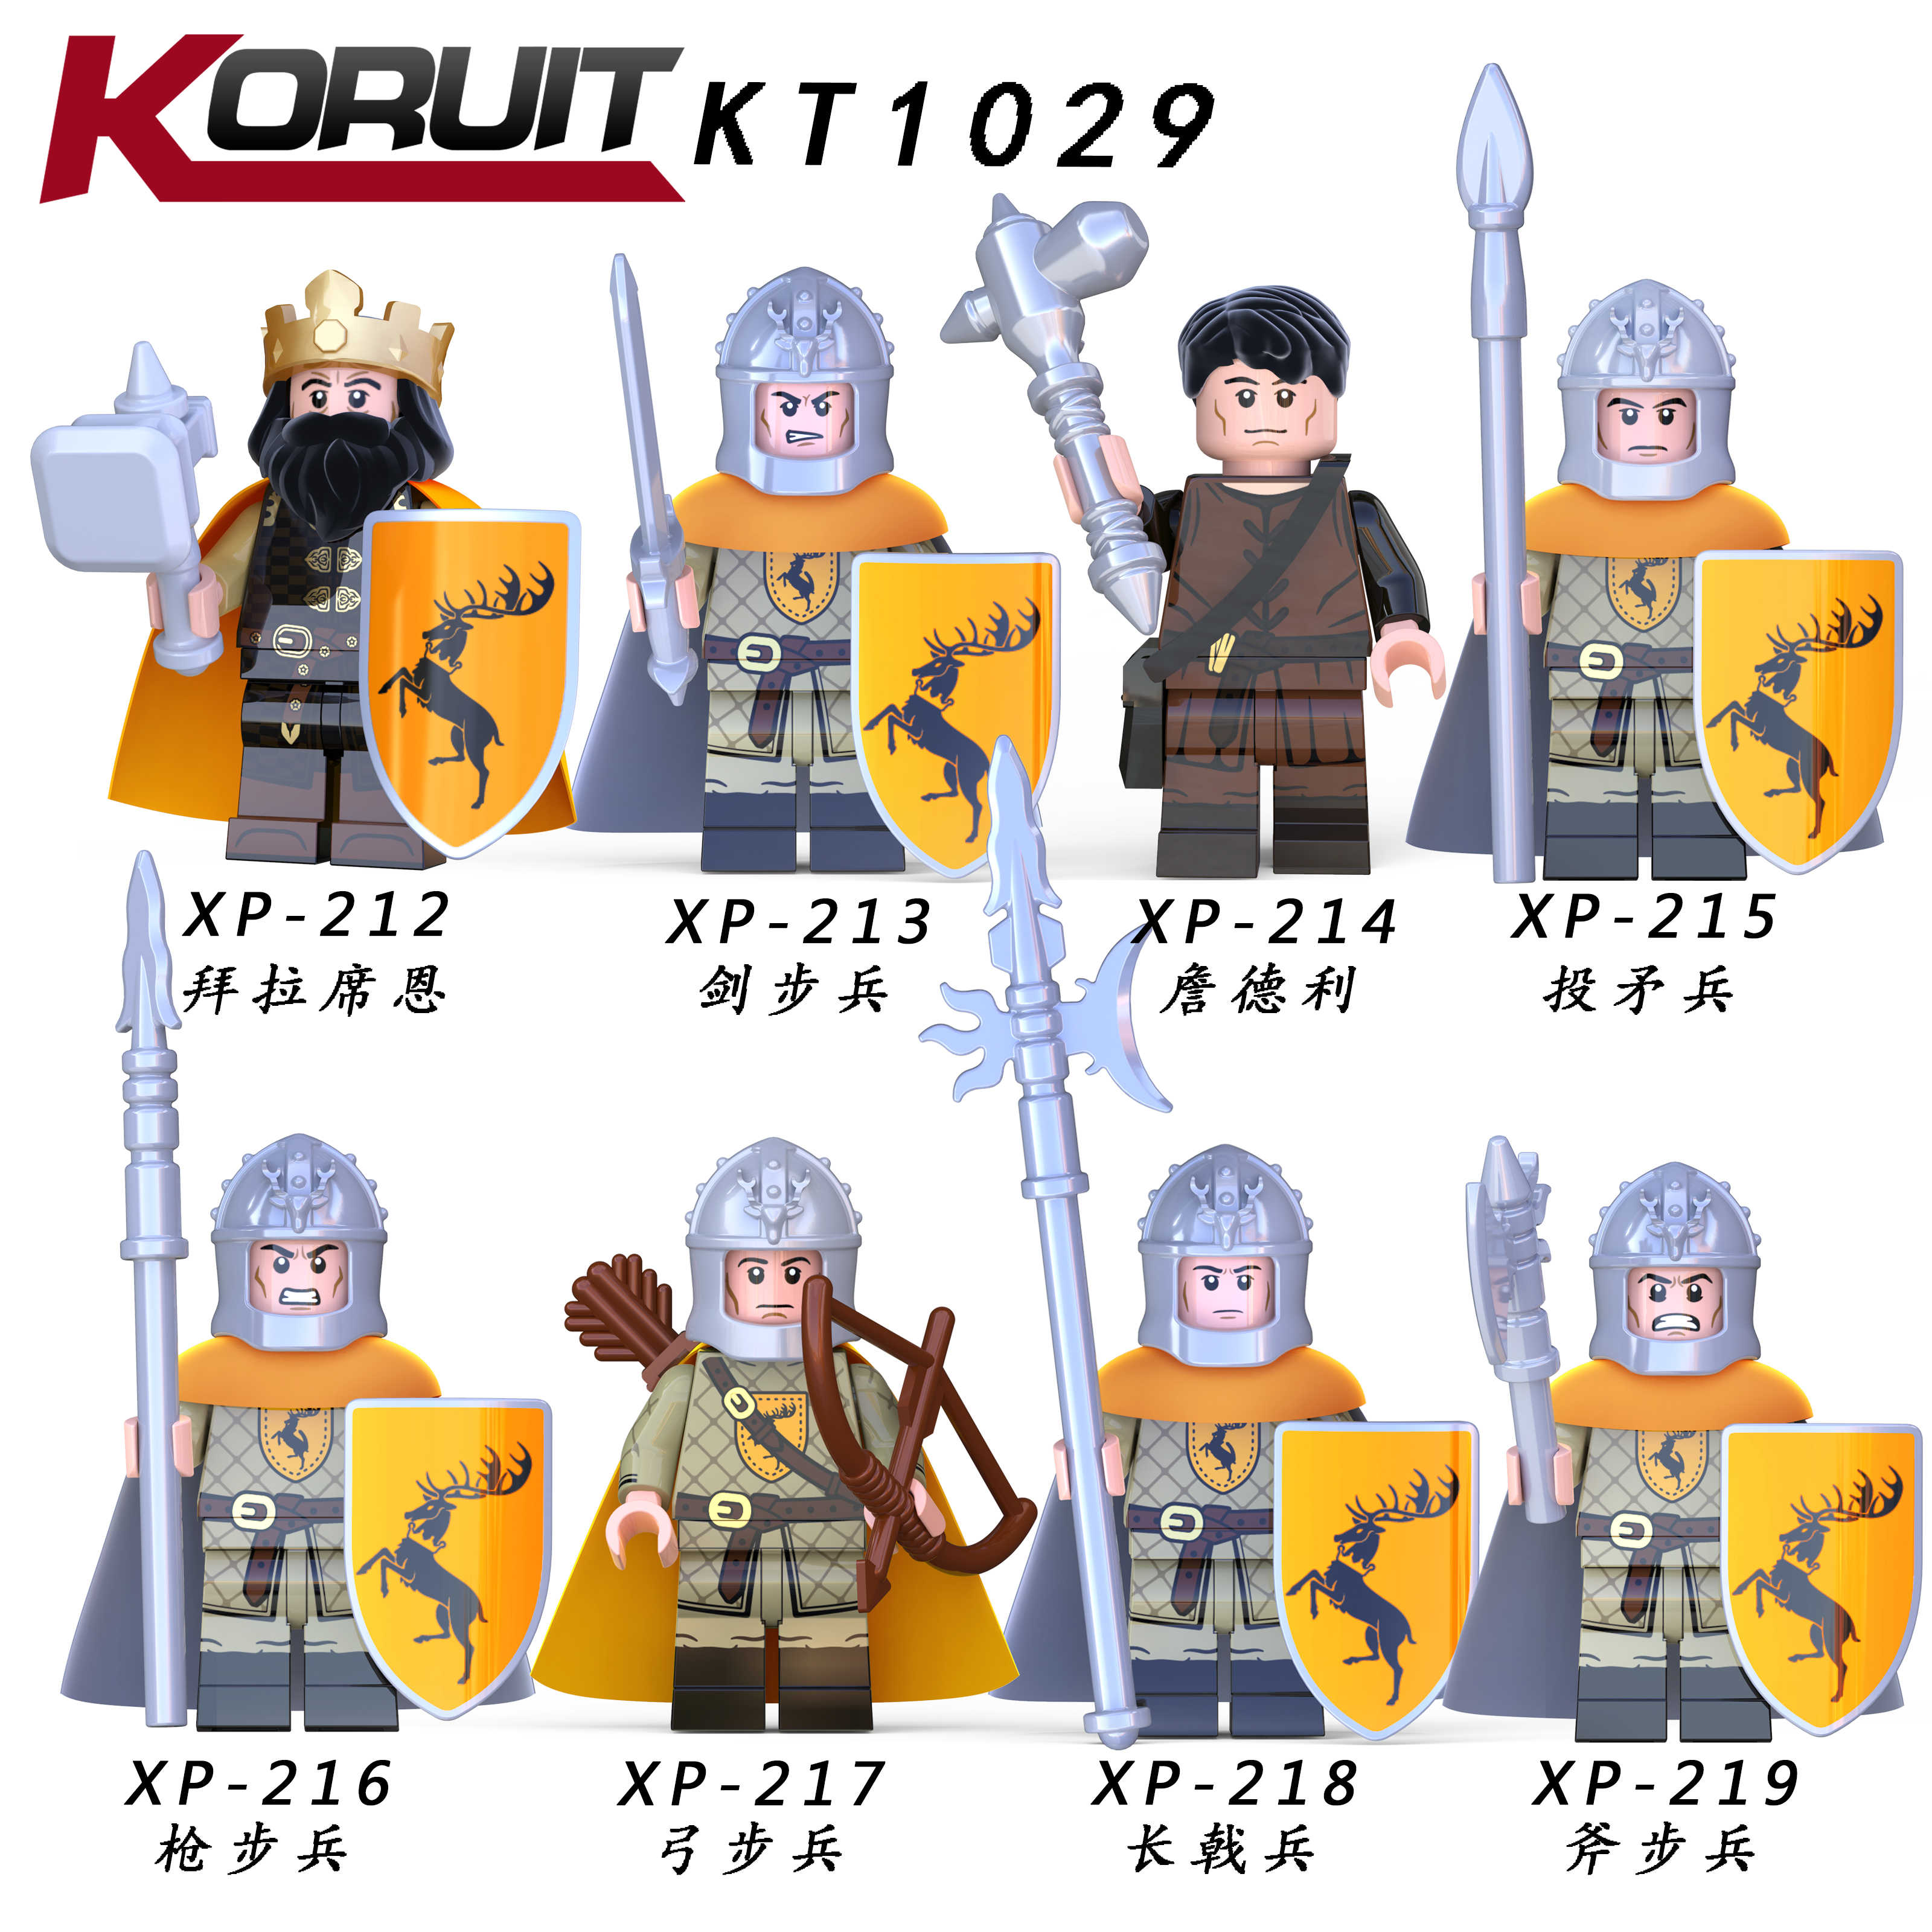 Single Game of Thrones Stannis Baratheon  Spear Sword Infantry  Archers Ice and Fire Building Blocks Toys Kid Gift KT1029